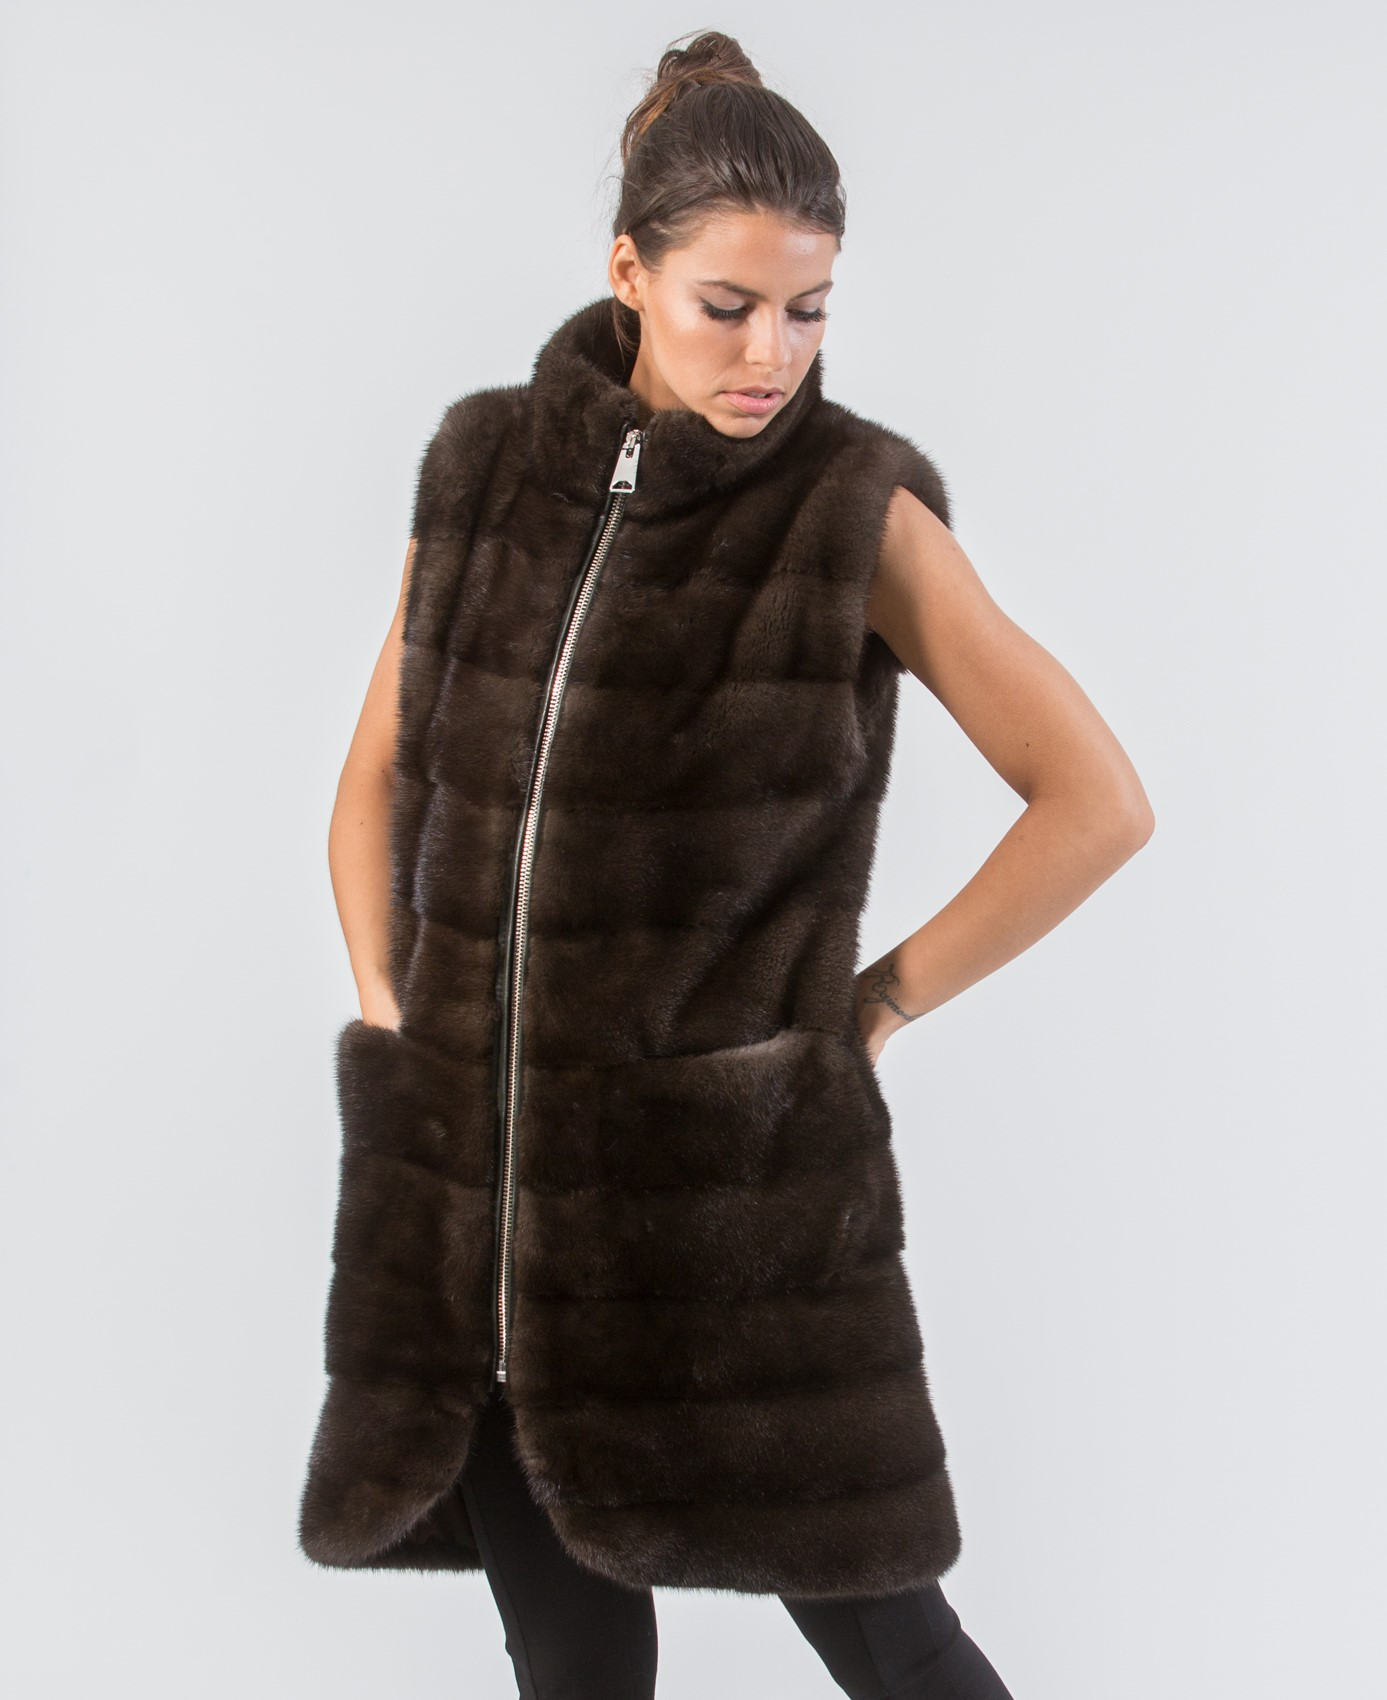 About Long Faux Fur Vest Getting the lush look and feel of fur without the costs of real fur is a